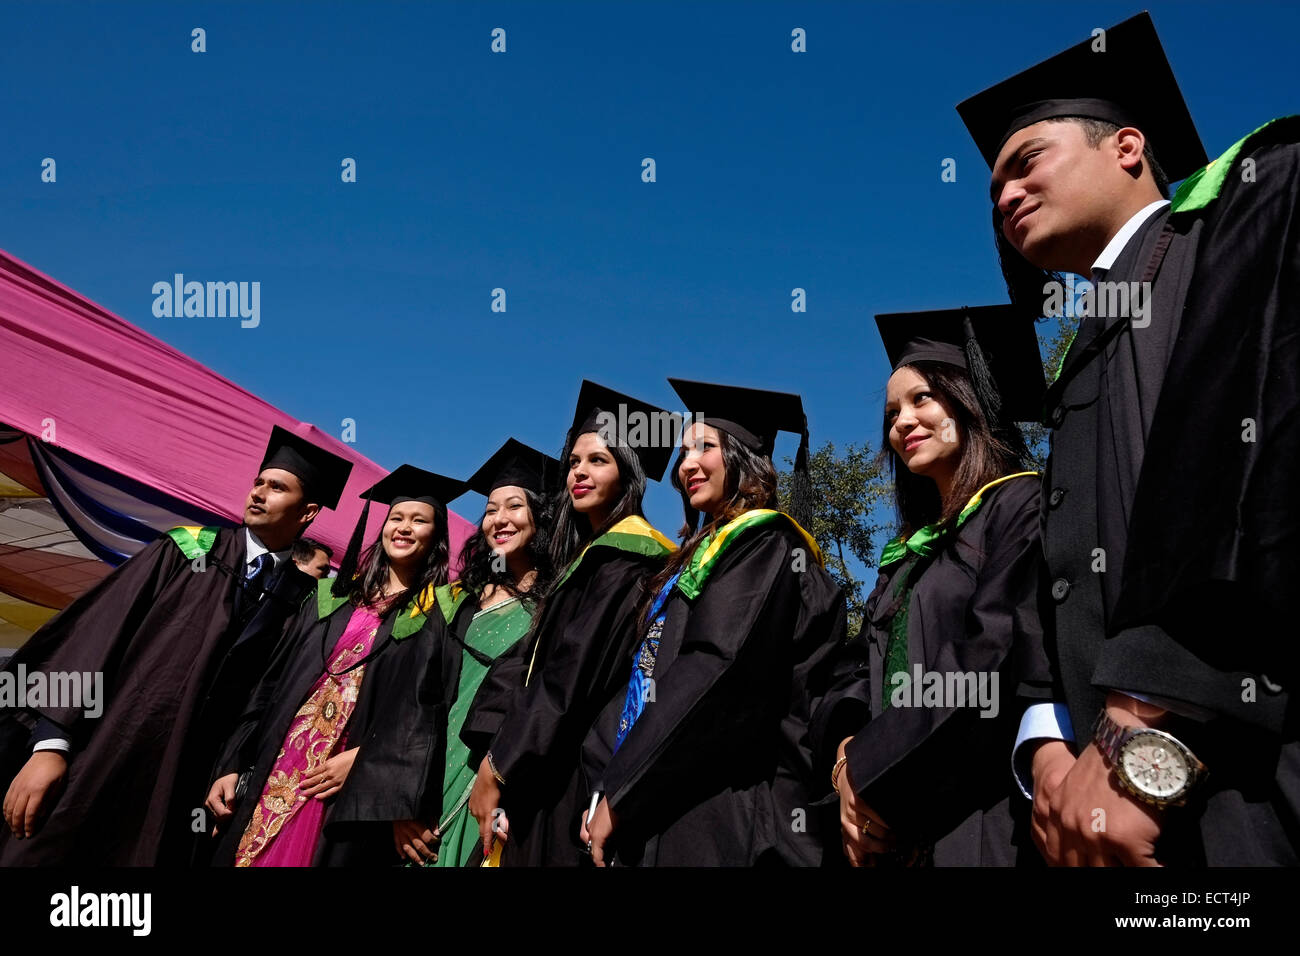 University students wearing a cap and gown posing for picture during ...